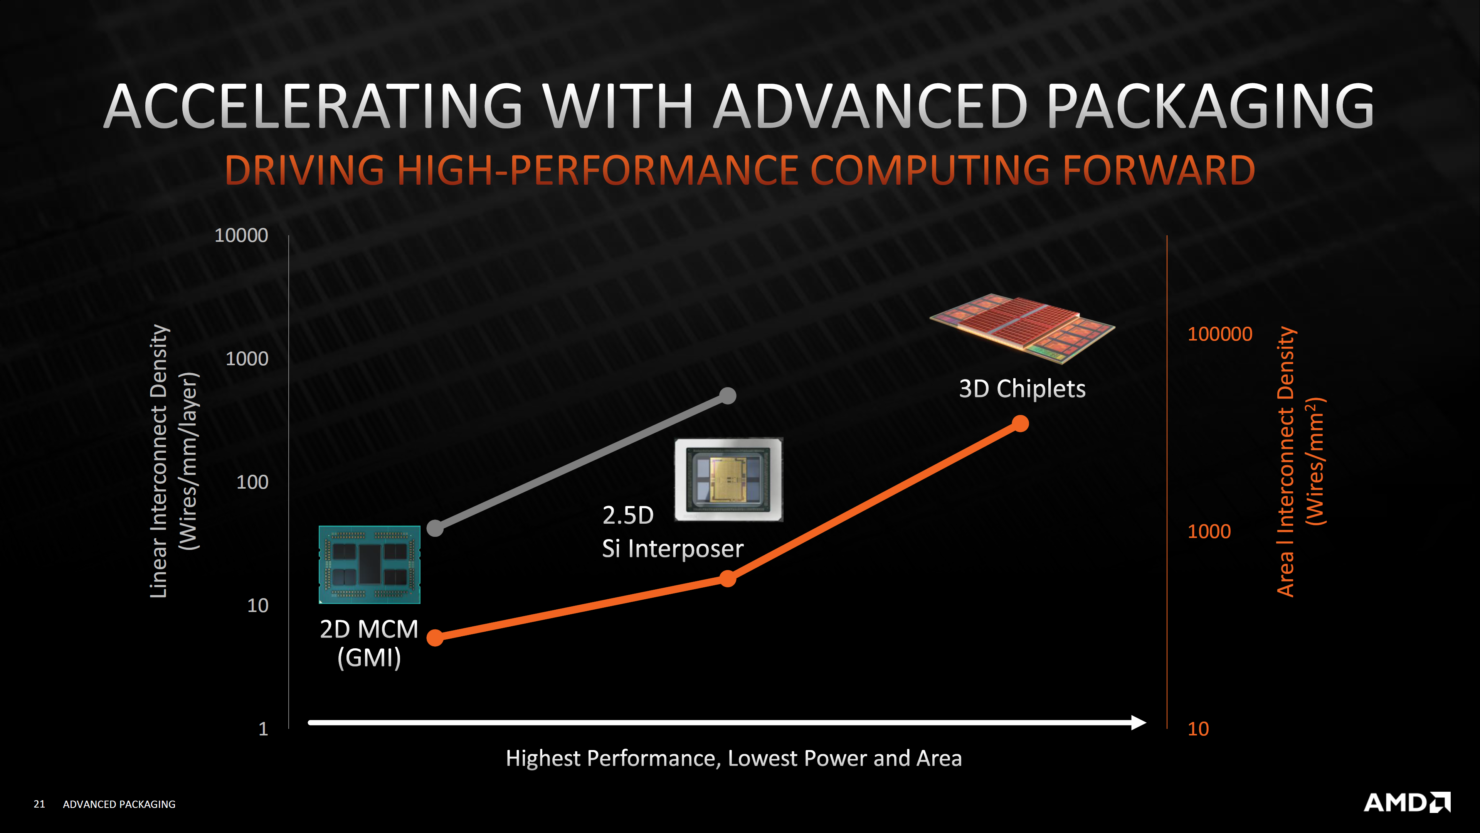 amd-advanced-3d-chiplet-packaging-3d-stacking-technologies-3d-v-cache-_20